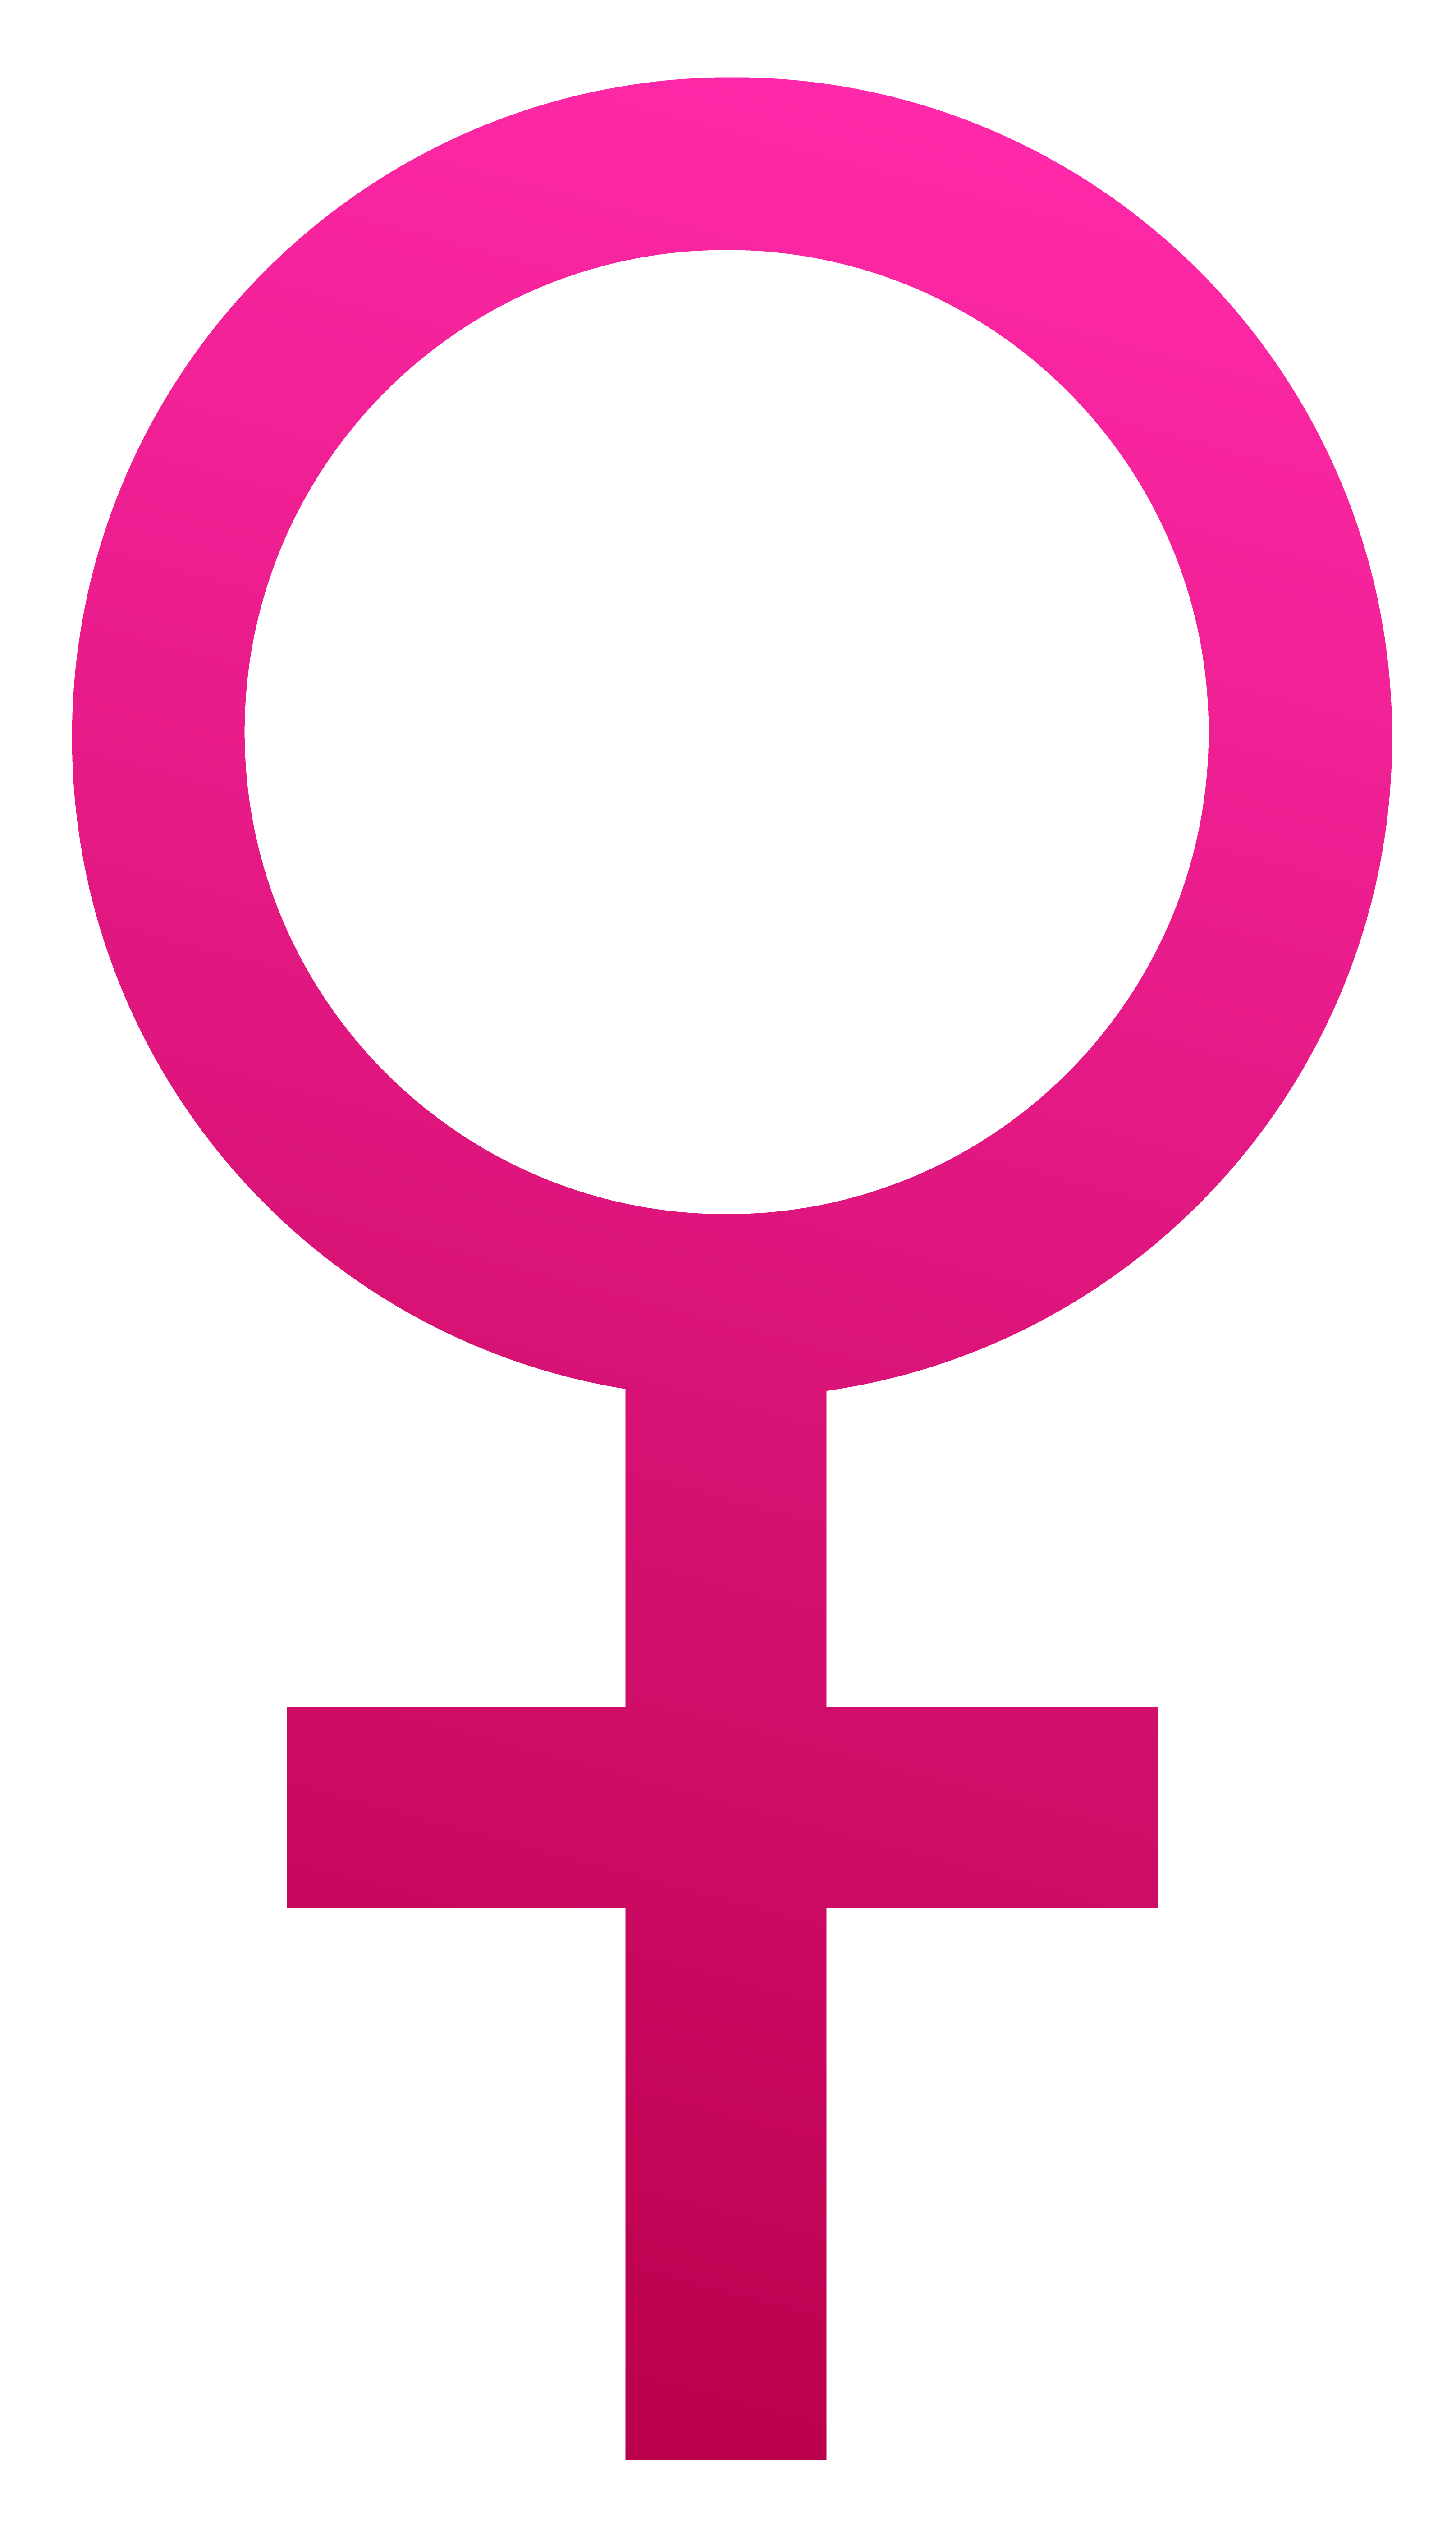 Symbol Of Woman Icons Png Vector Free Icons And Png Backgrounds